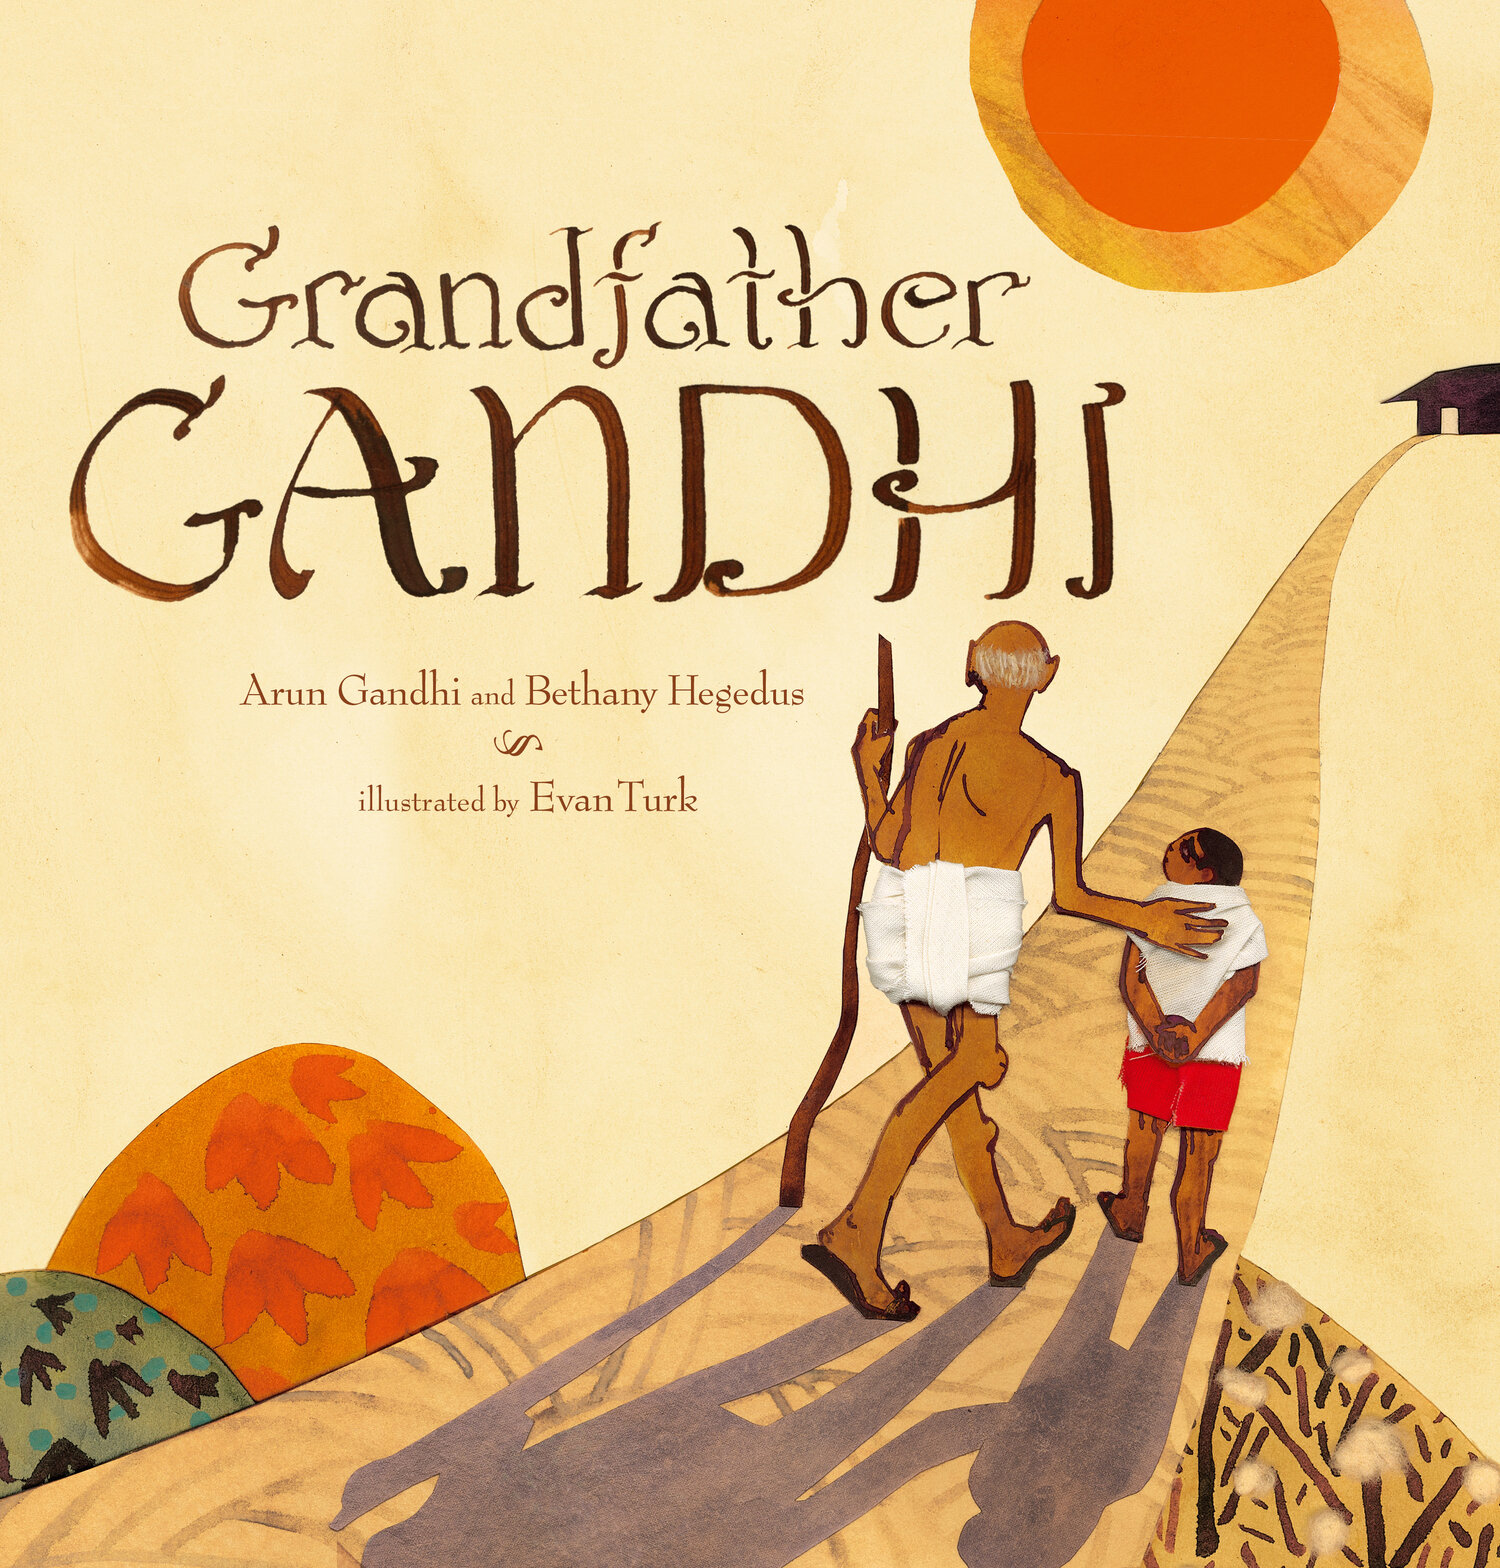 Excerpted from Grandfather Gandhi by Arun Gandhi and Bethany Hegedus, illustrated by Evan Turk. Text copyright 2014 by Arun Gandhi and Bethany Hegedus. Illustrations copyright by Evan Turk. Excerpted by permission of Atheneum Books For Young Readers, an imprint of Simon & Schuster Children's Publishing Division.